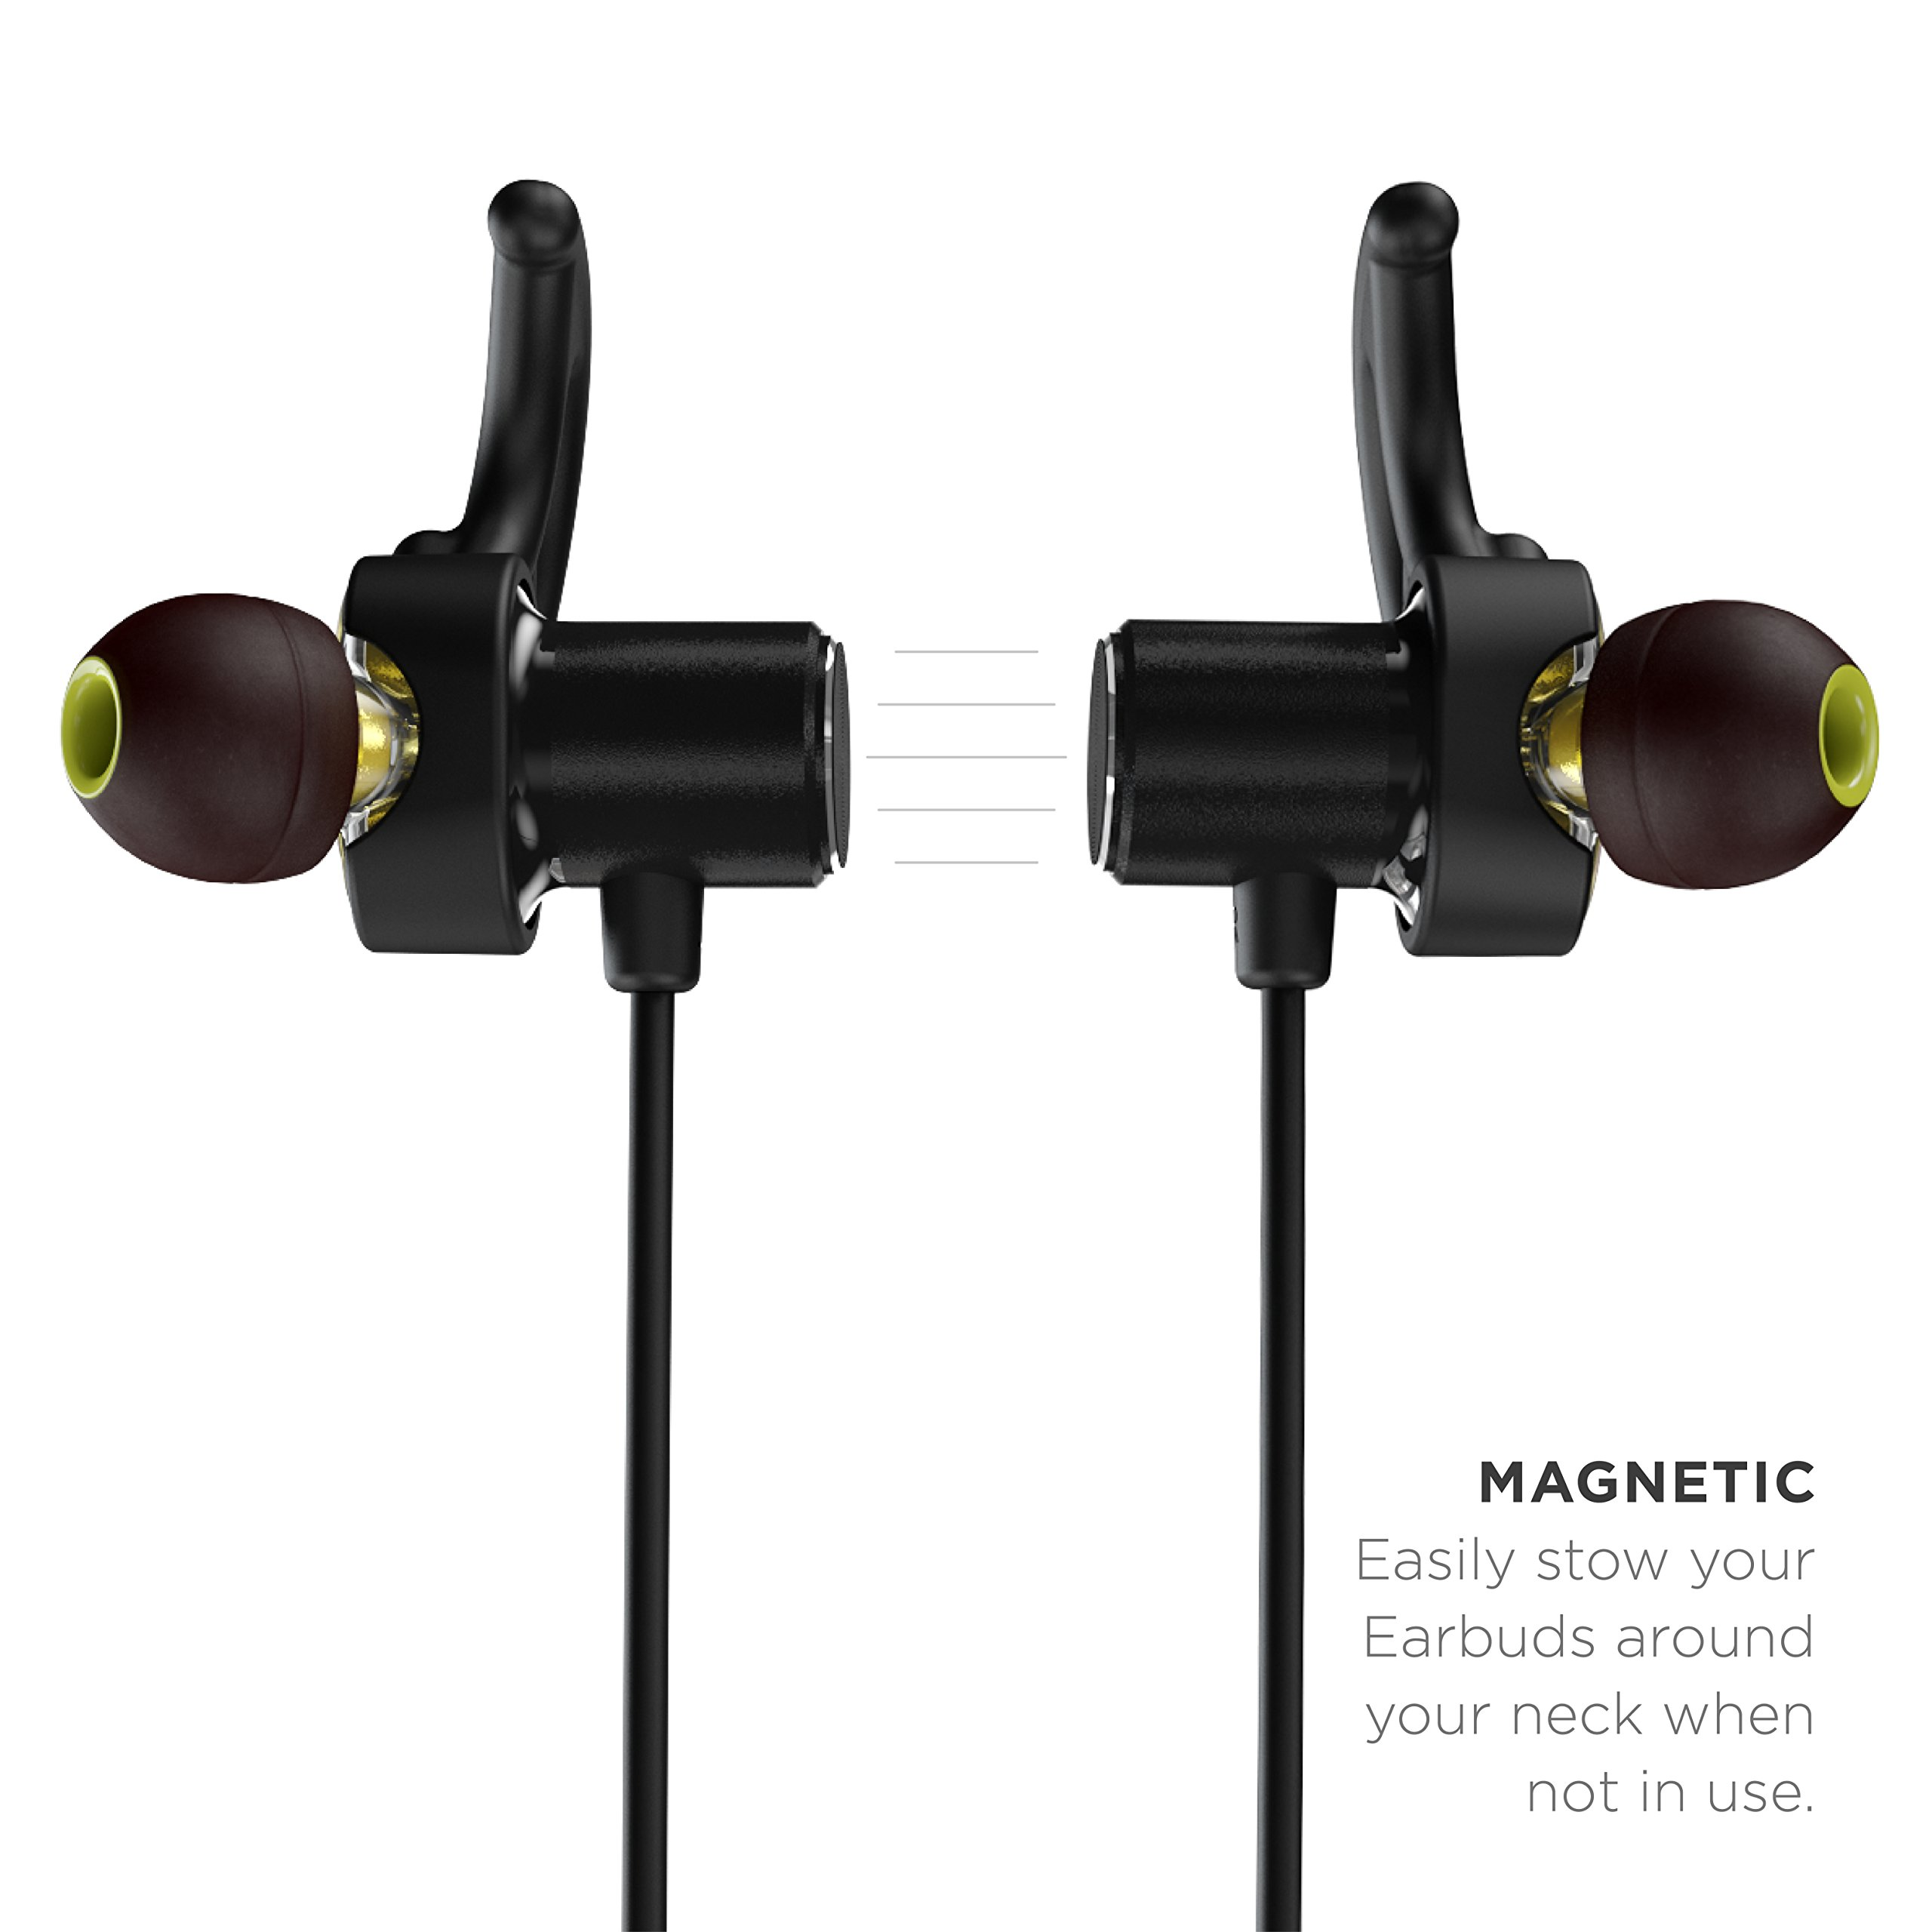 Phaiser BHS-790 Bluetooth Headphones with Dual Graphene Drivers and AptX Sport Headset Earphones with Mic and Lifetime Sweatproof Guarantee - Wireless Bluetooth Earbuds for Running, Blackout by Phaiser (Image #3)